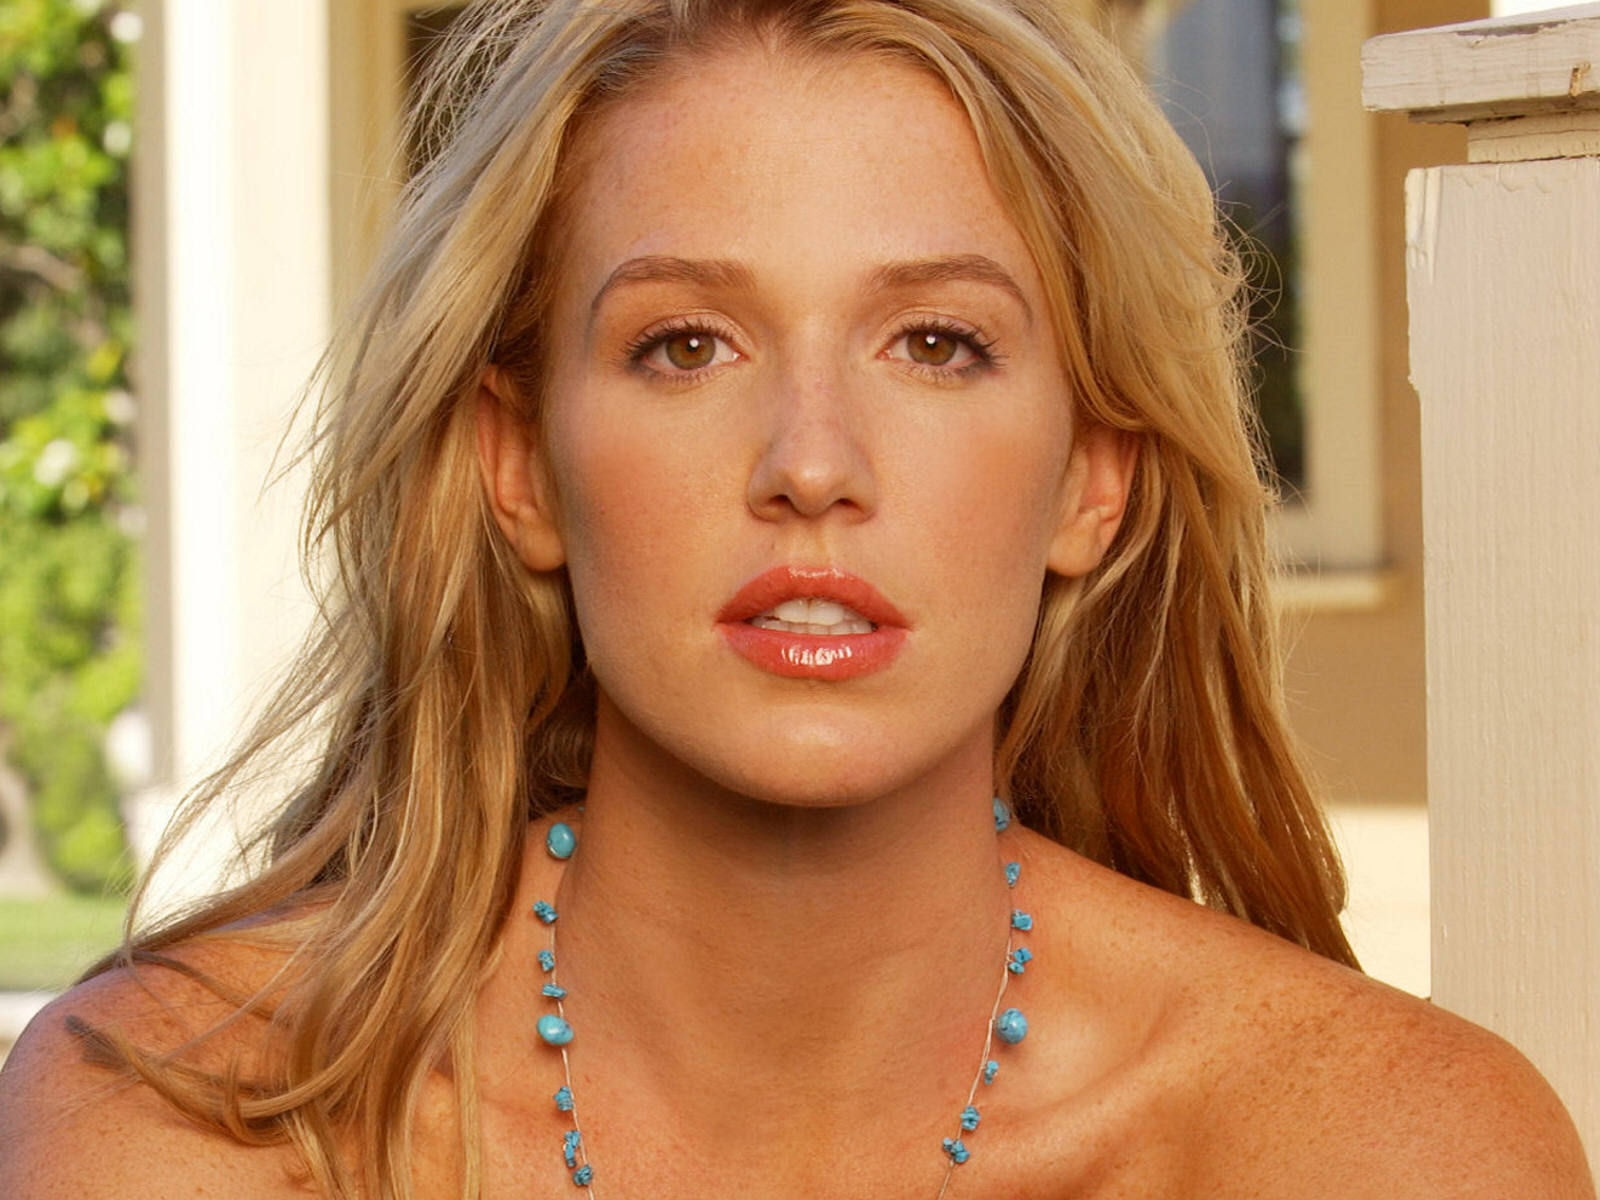 Poppy montgomery cute face stills